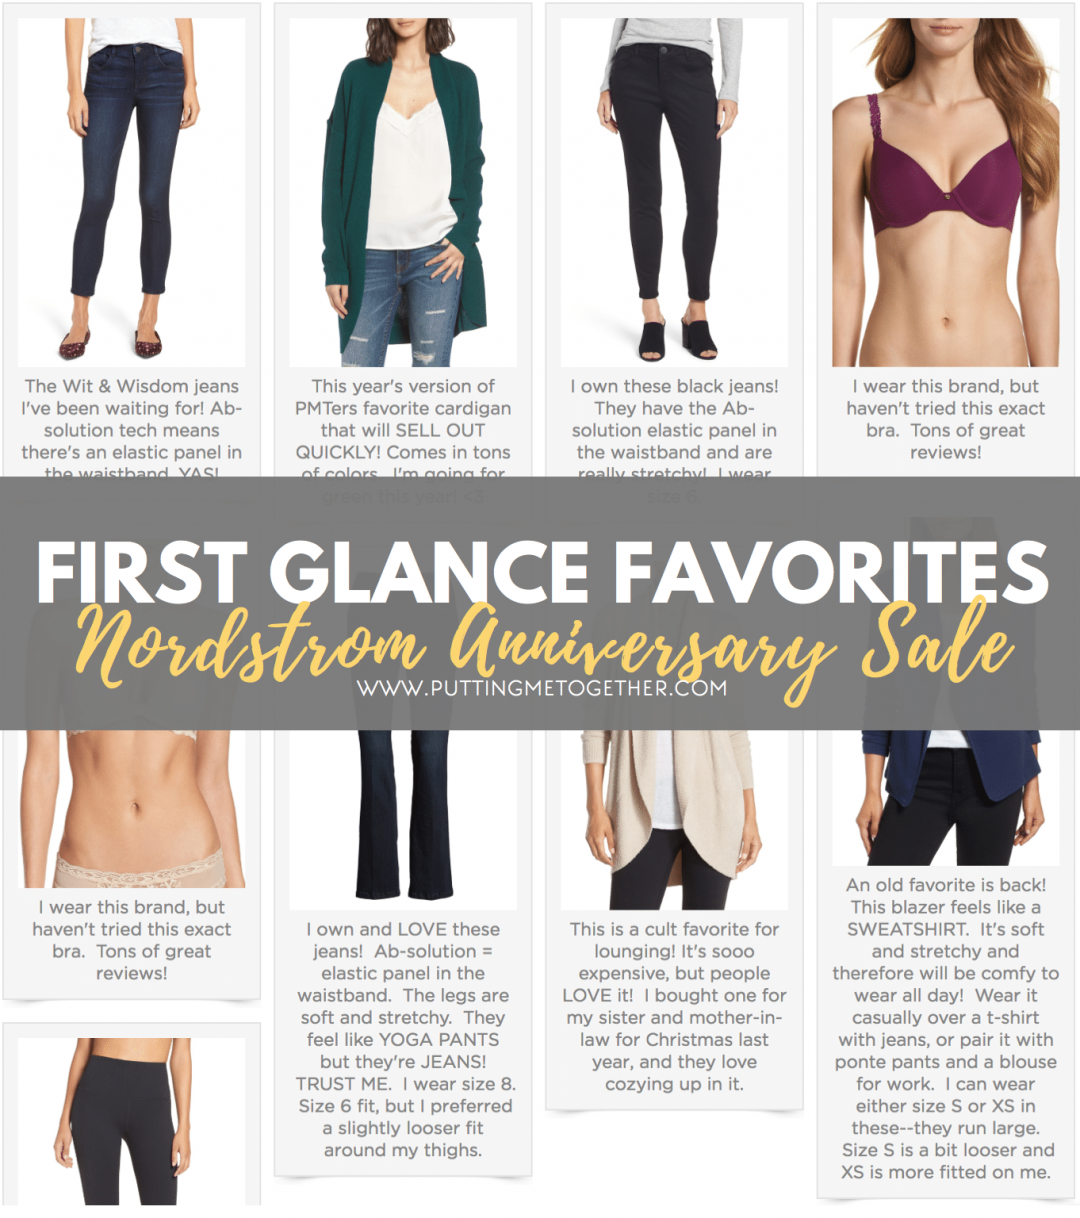 Nordstrom Anniversary Sale First Glance Favorites